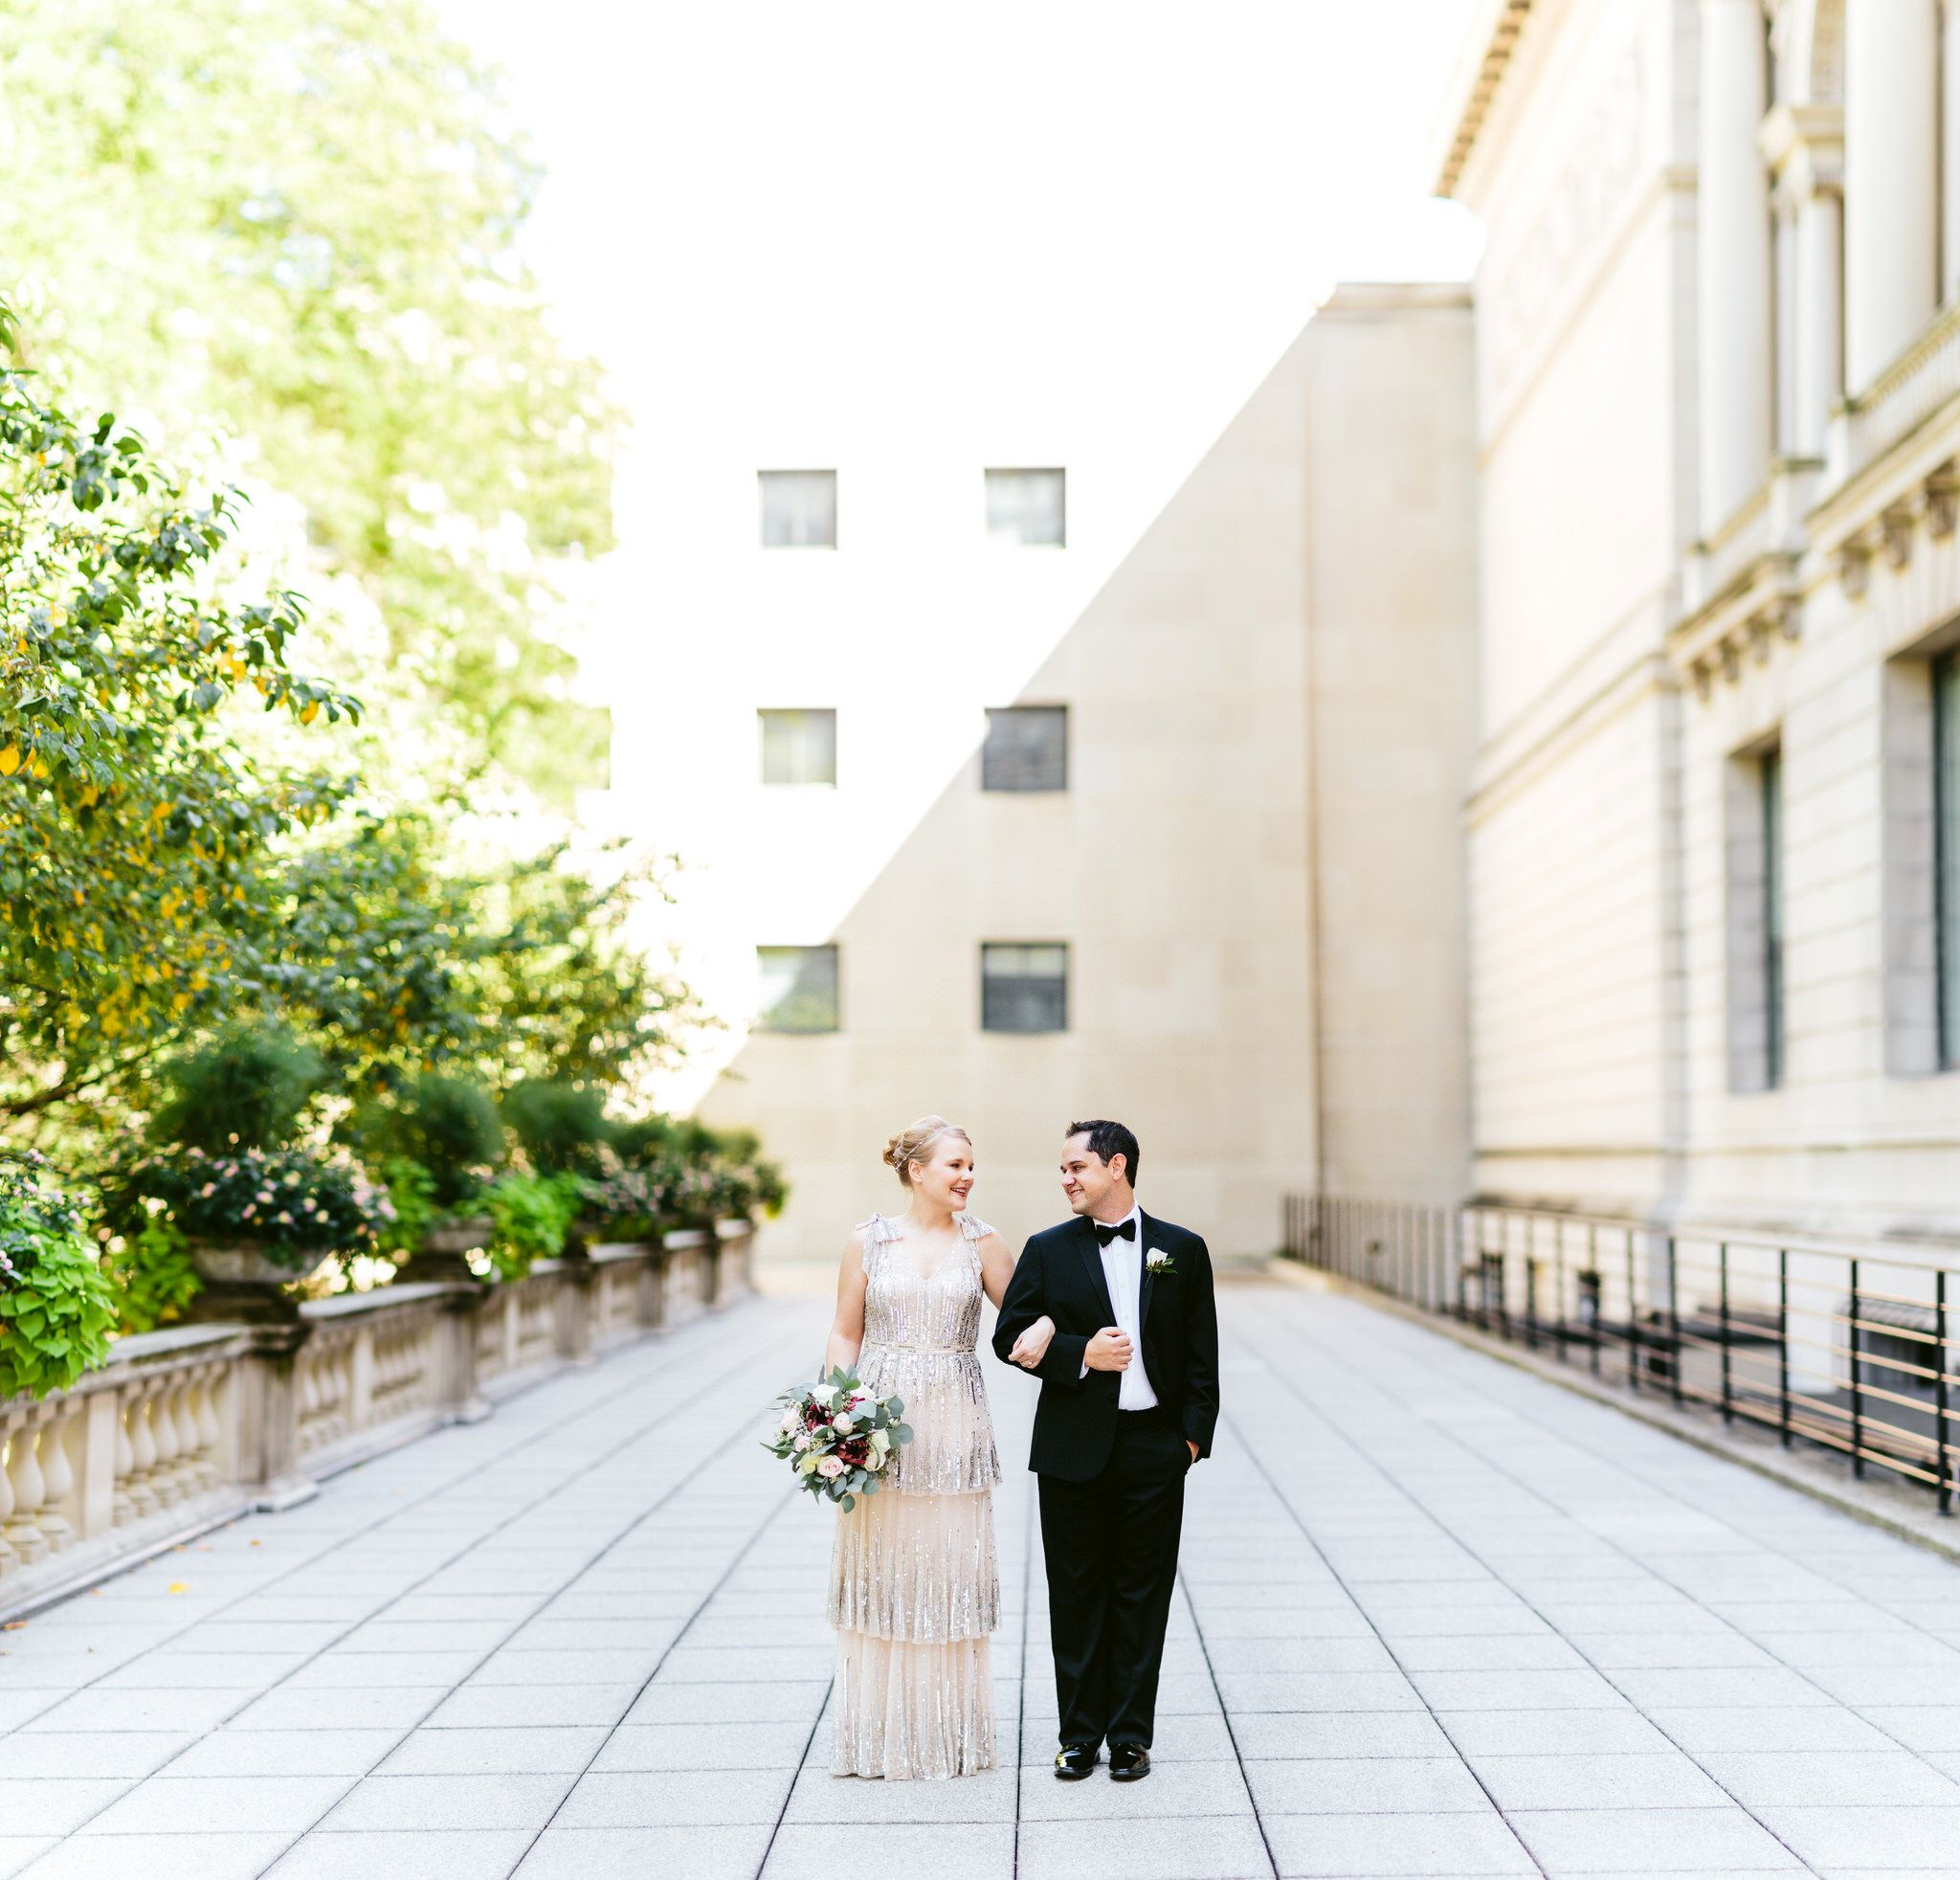 Nicodem-creative-chicago-wedding-photography-videography